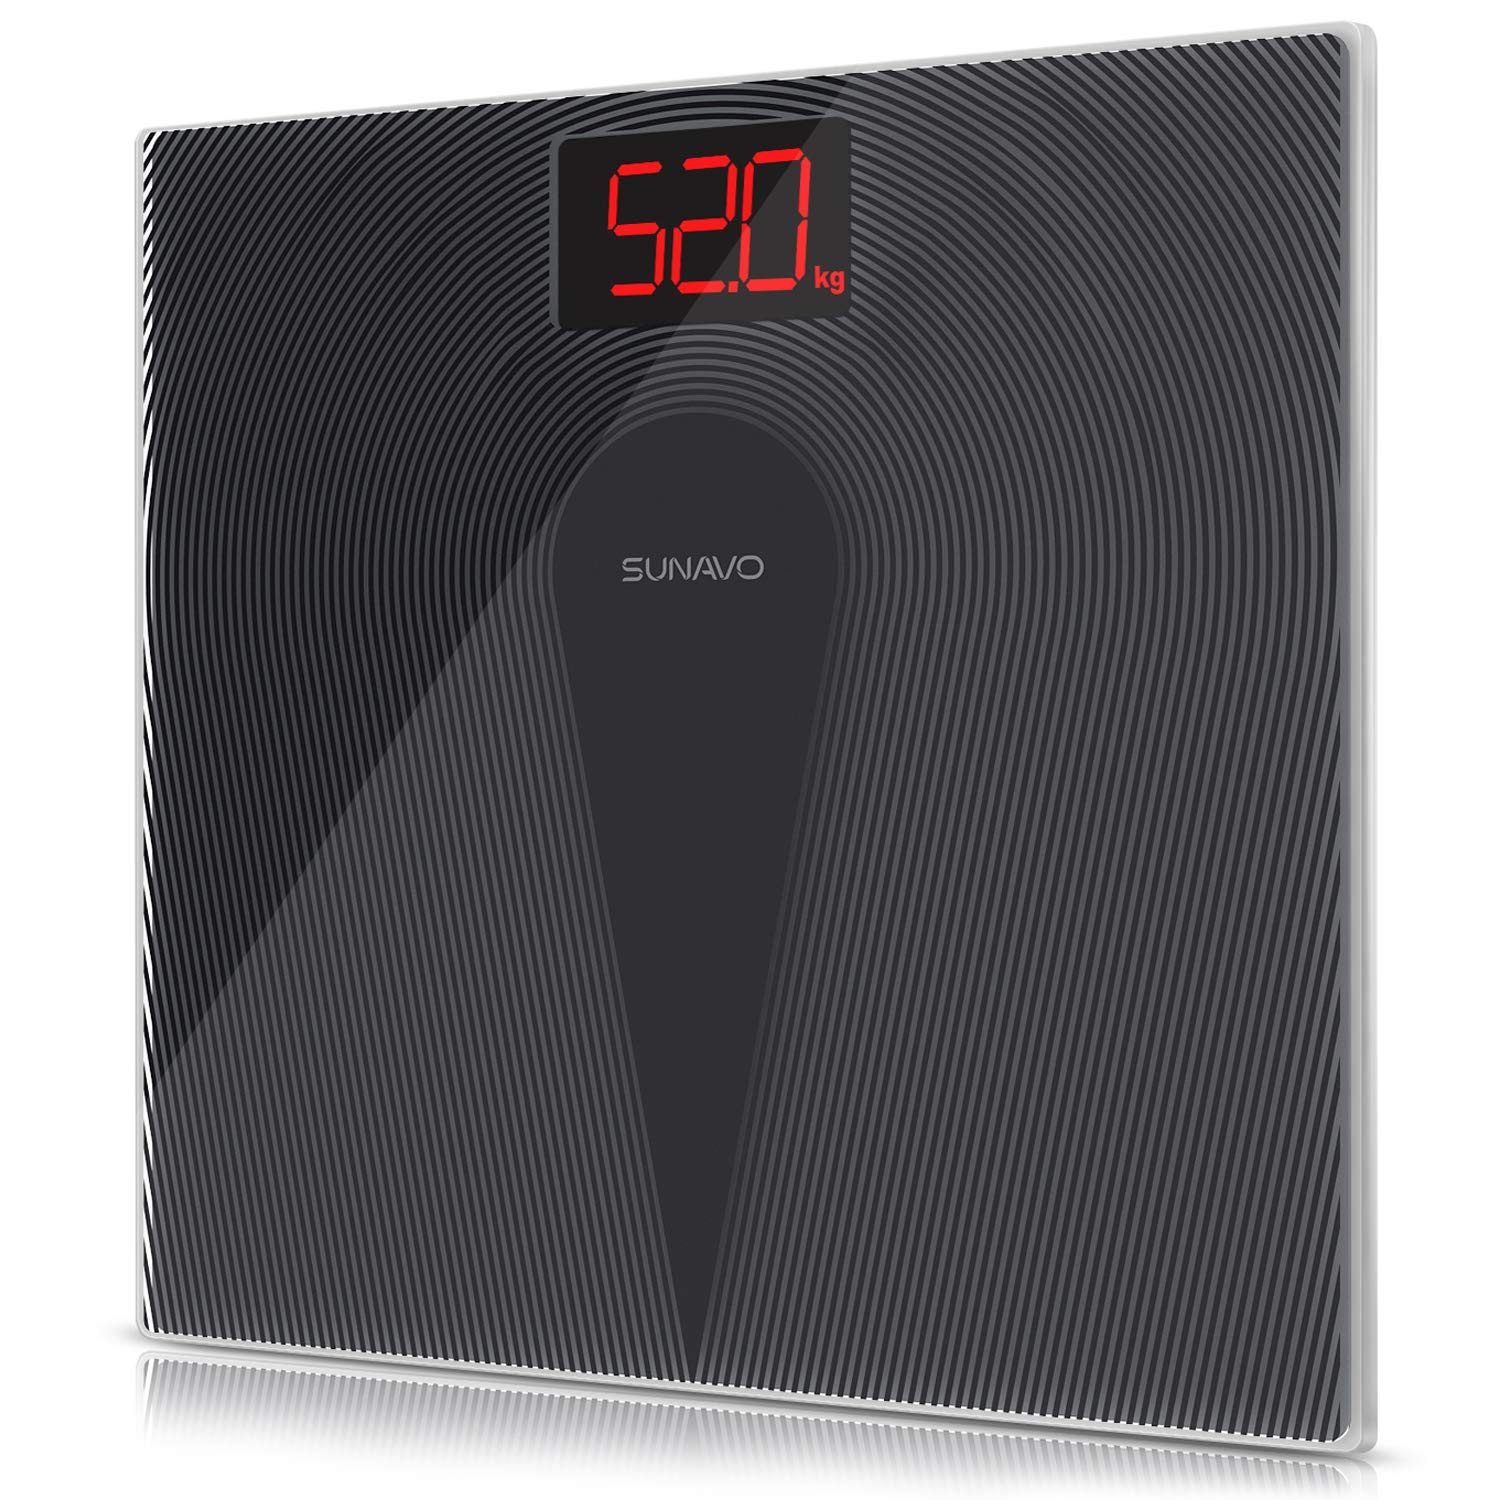 SUNAVO Digital Bathroom Scale 400 Pounds Step-On Technology Waterproof Fingerprint Body Weight Scale Non-Slip Design Backlit Displays Scale with Tempered Glass (Bathroom Scale)